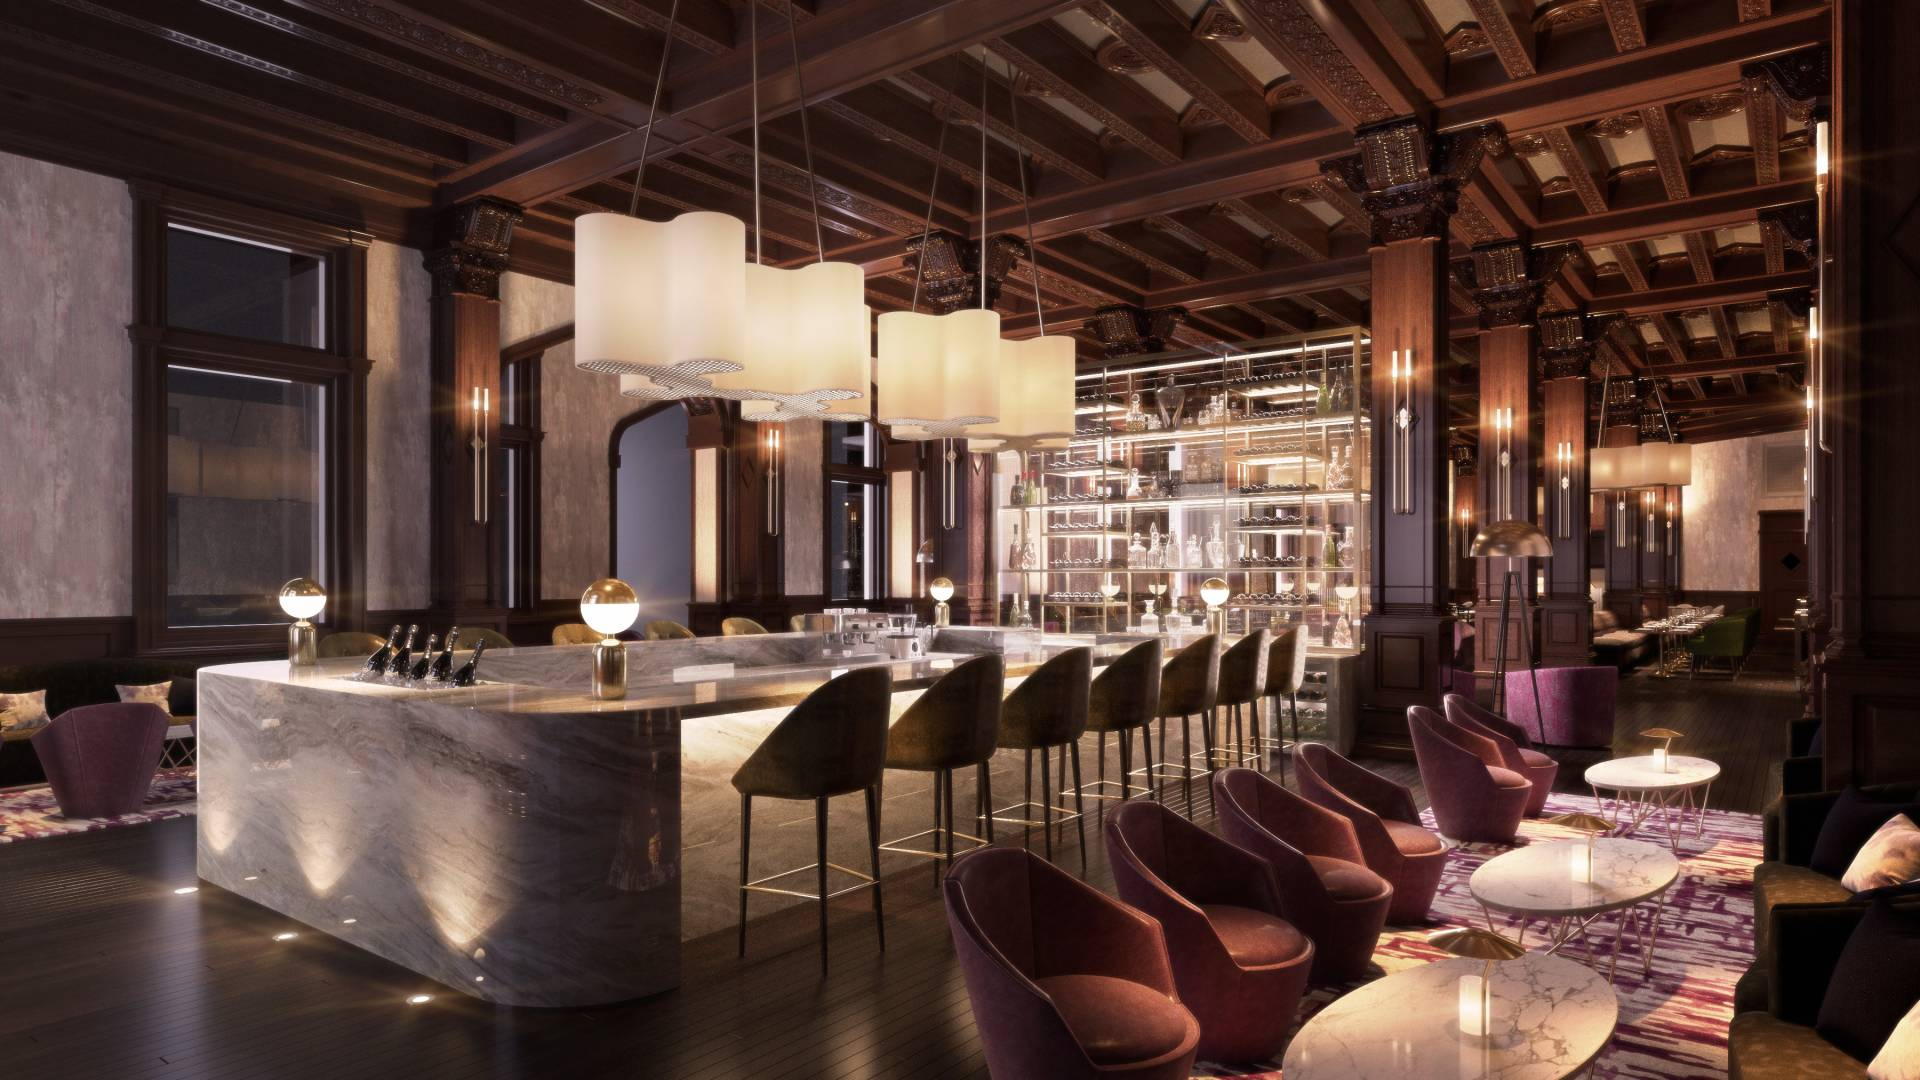 Revamped Fairmont Empress Hotel in Victoria gets a contemporary, chic  makeover | Georgia Straight Vancouver's News & Entertainment Weekly